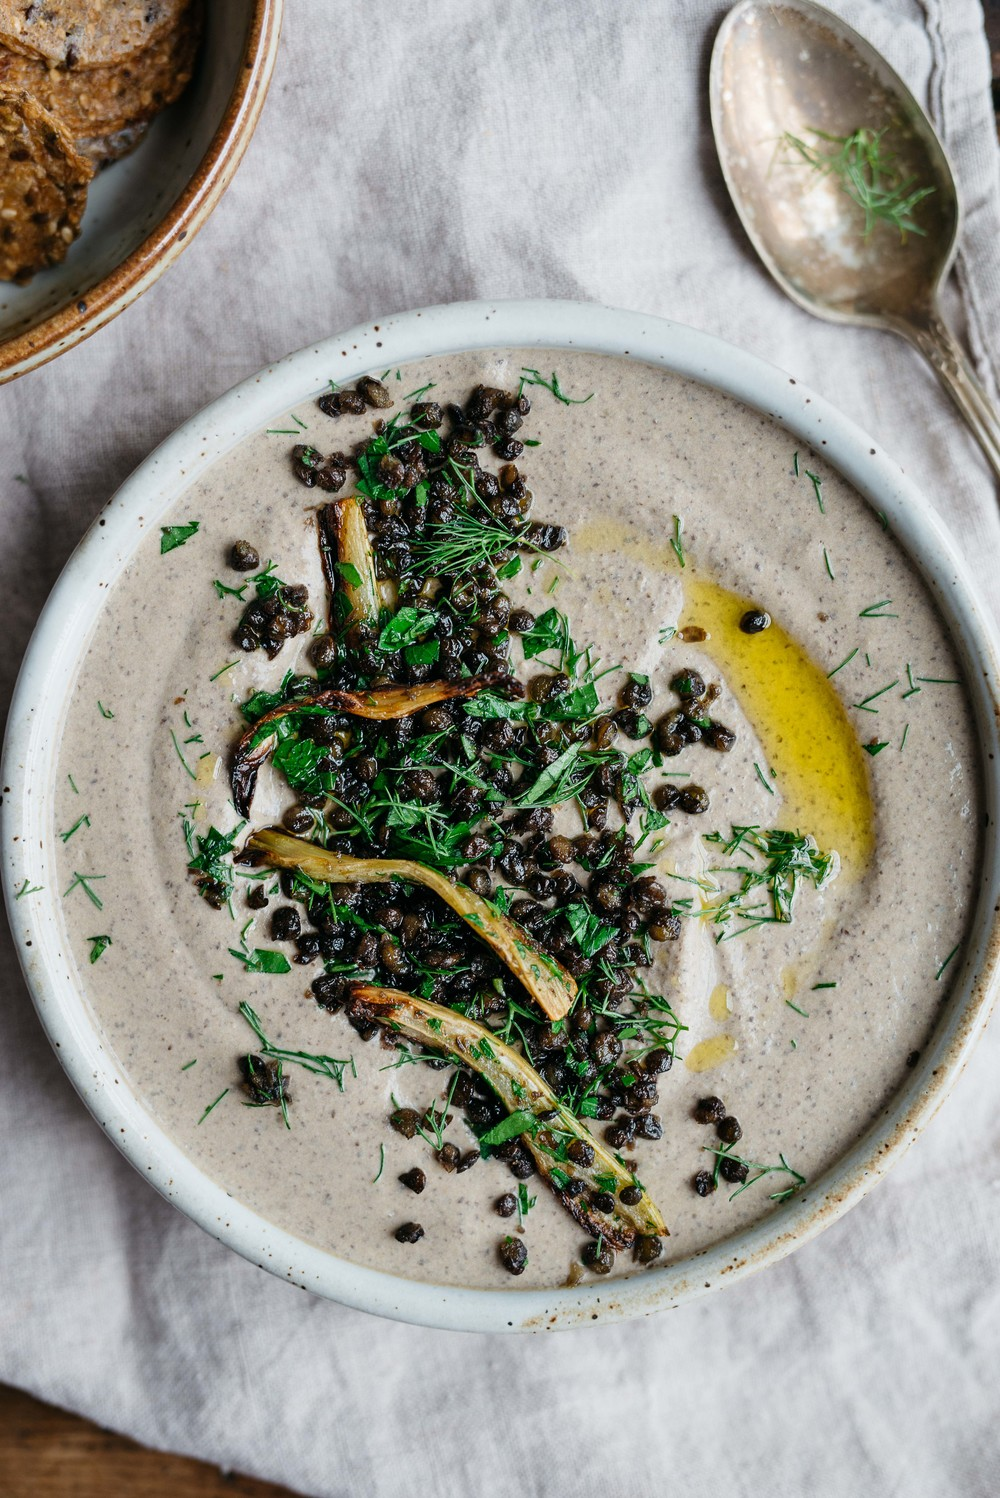 Black beluga lentil hummus w/ roasted fennel + garlic | dolly and oatmeal